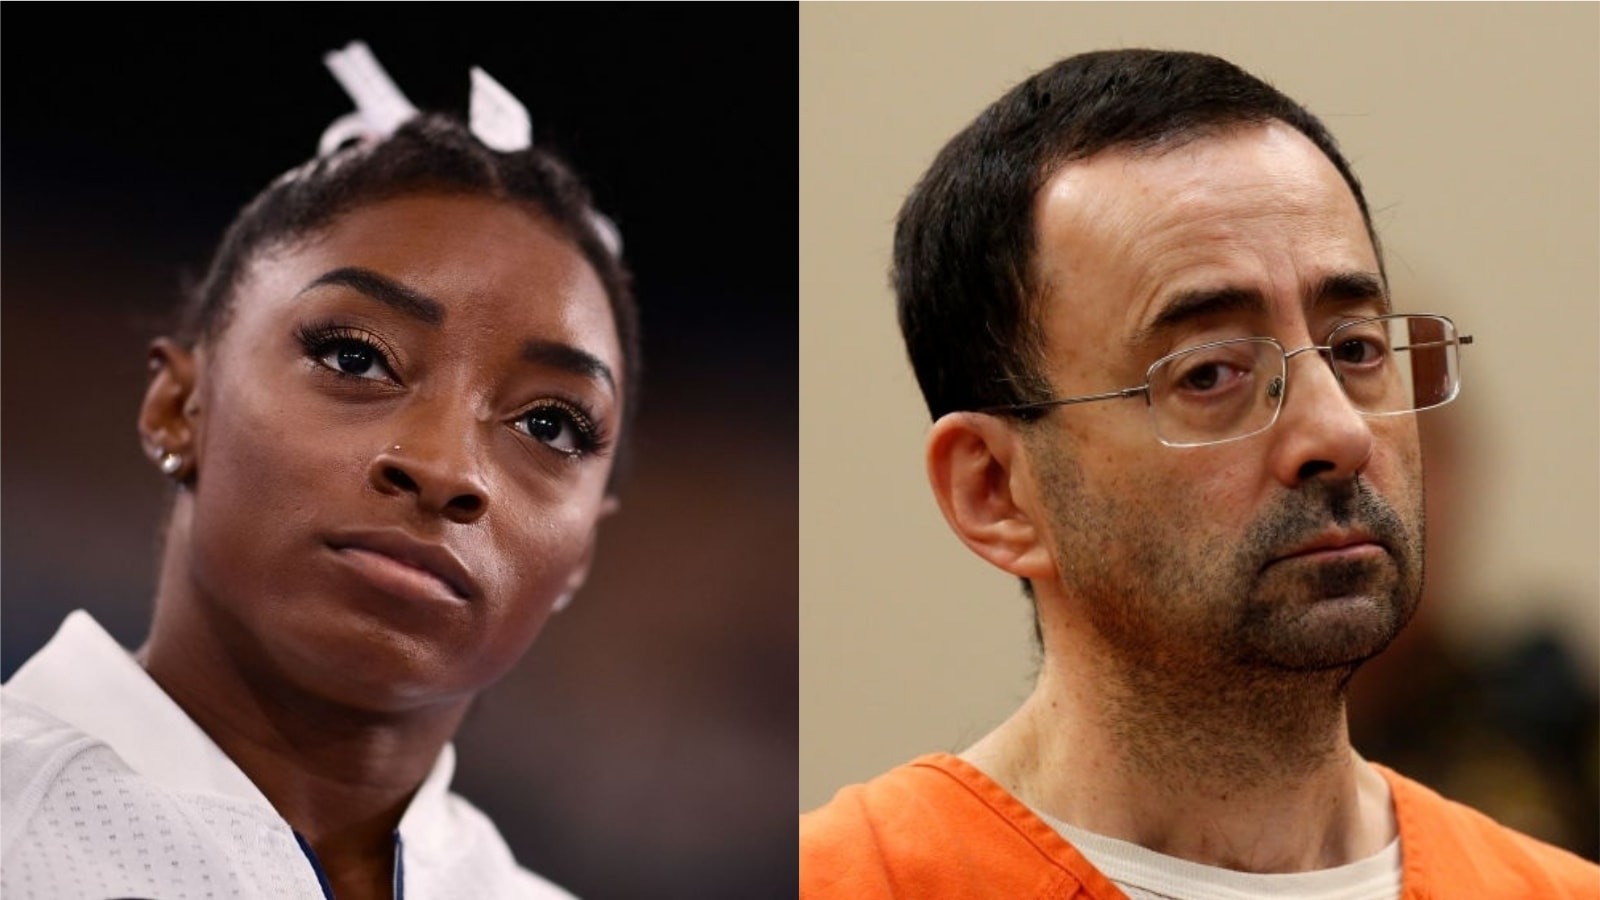 Simone Biles Says Multiple Institutions 'Failed' To Protect Her In Handling Of Larry Nassar Case During Emotional Testimony To Congress